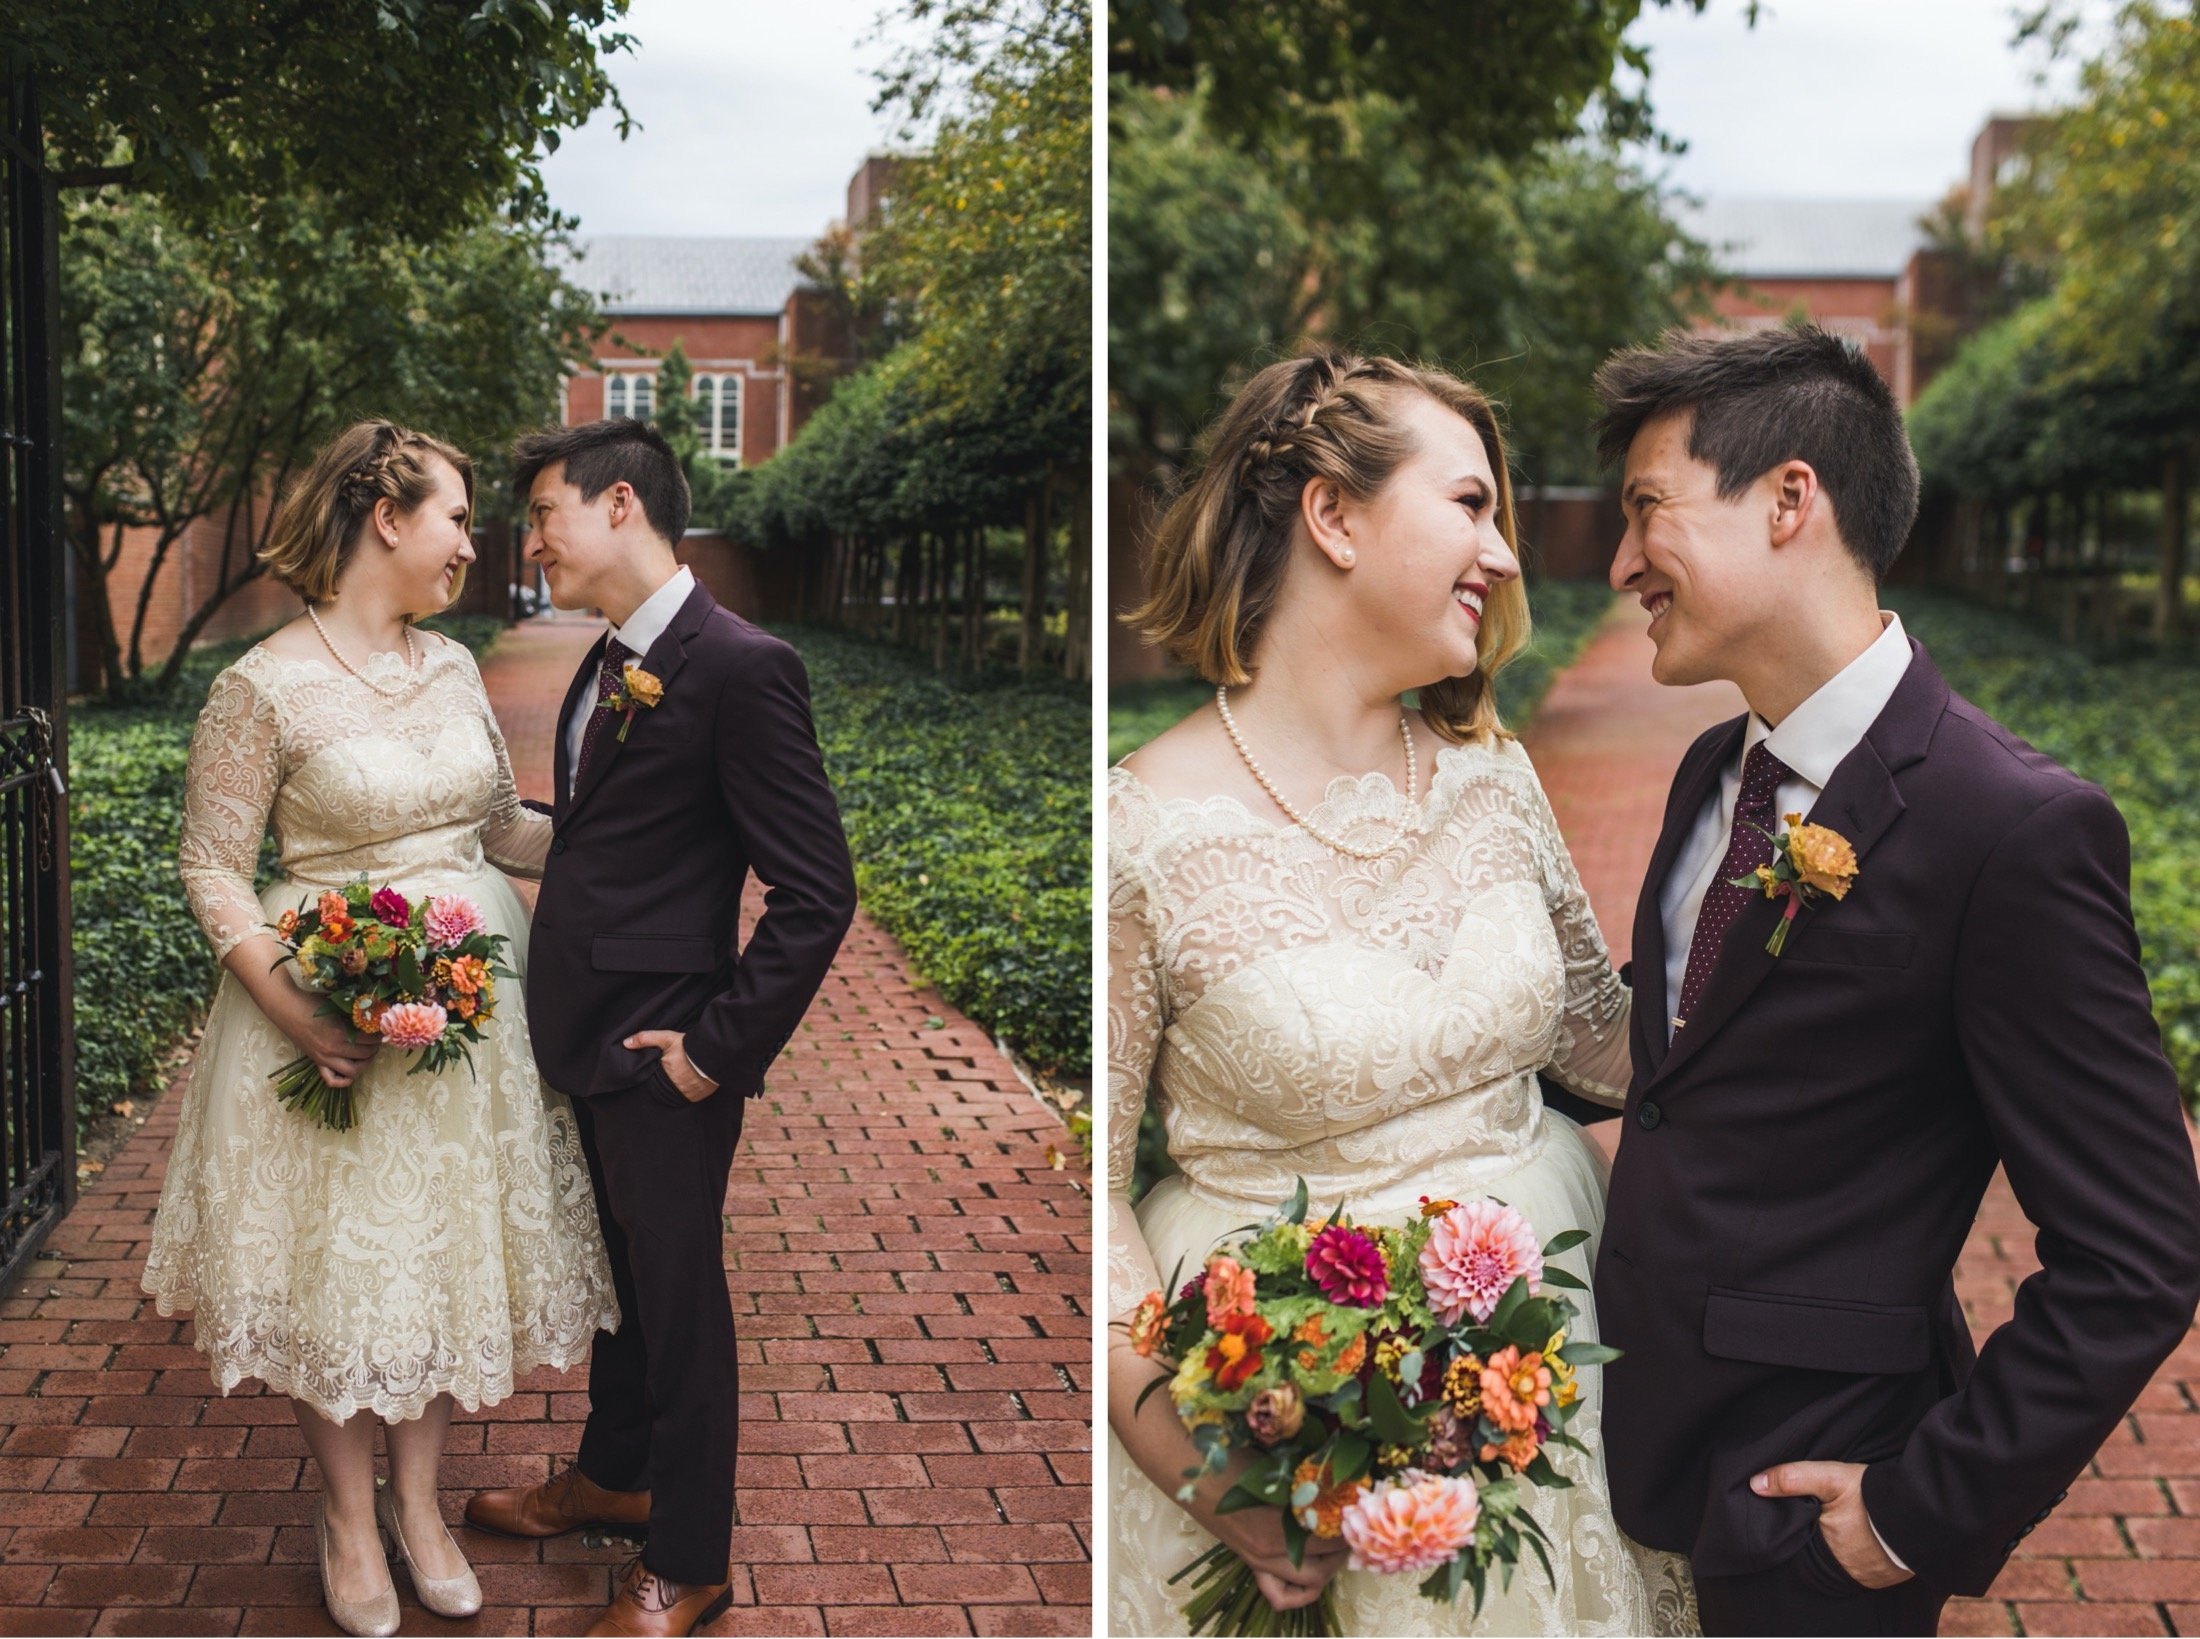 18th Century Gardens, Philadelphia, wedding, elopement, microwedding